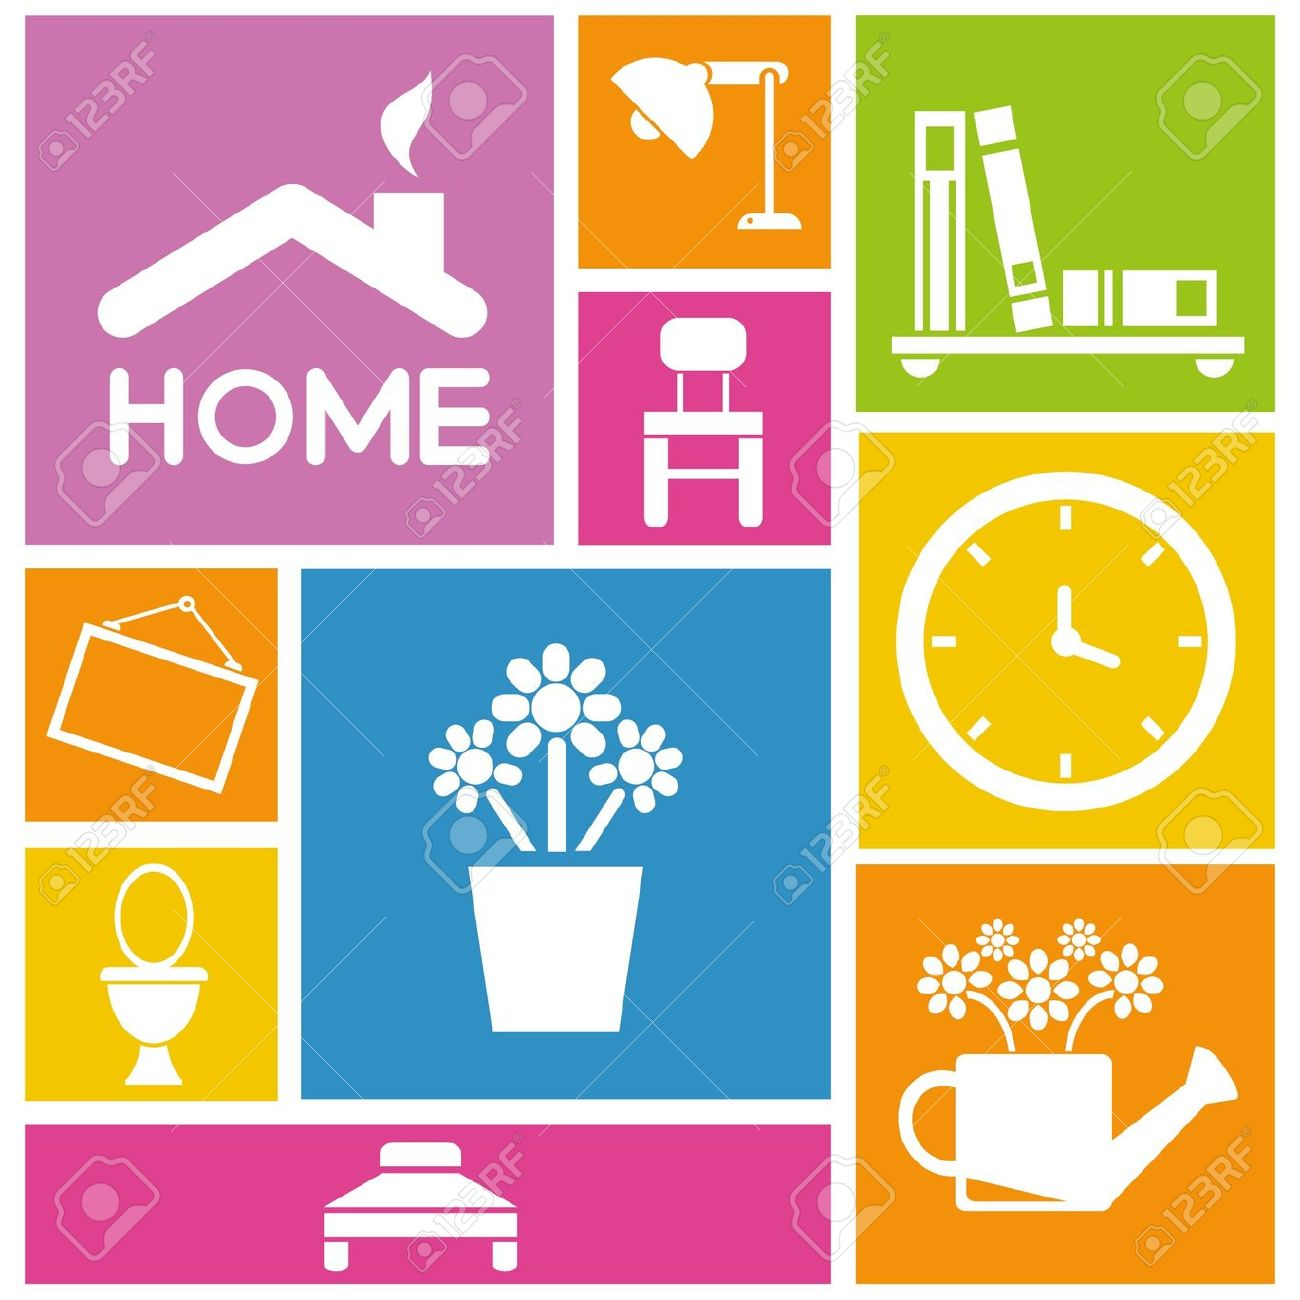 interior icon clipart icons background colorful clipground vector cliparts